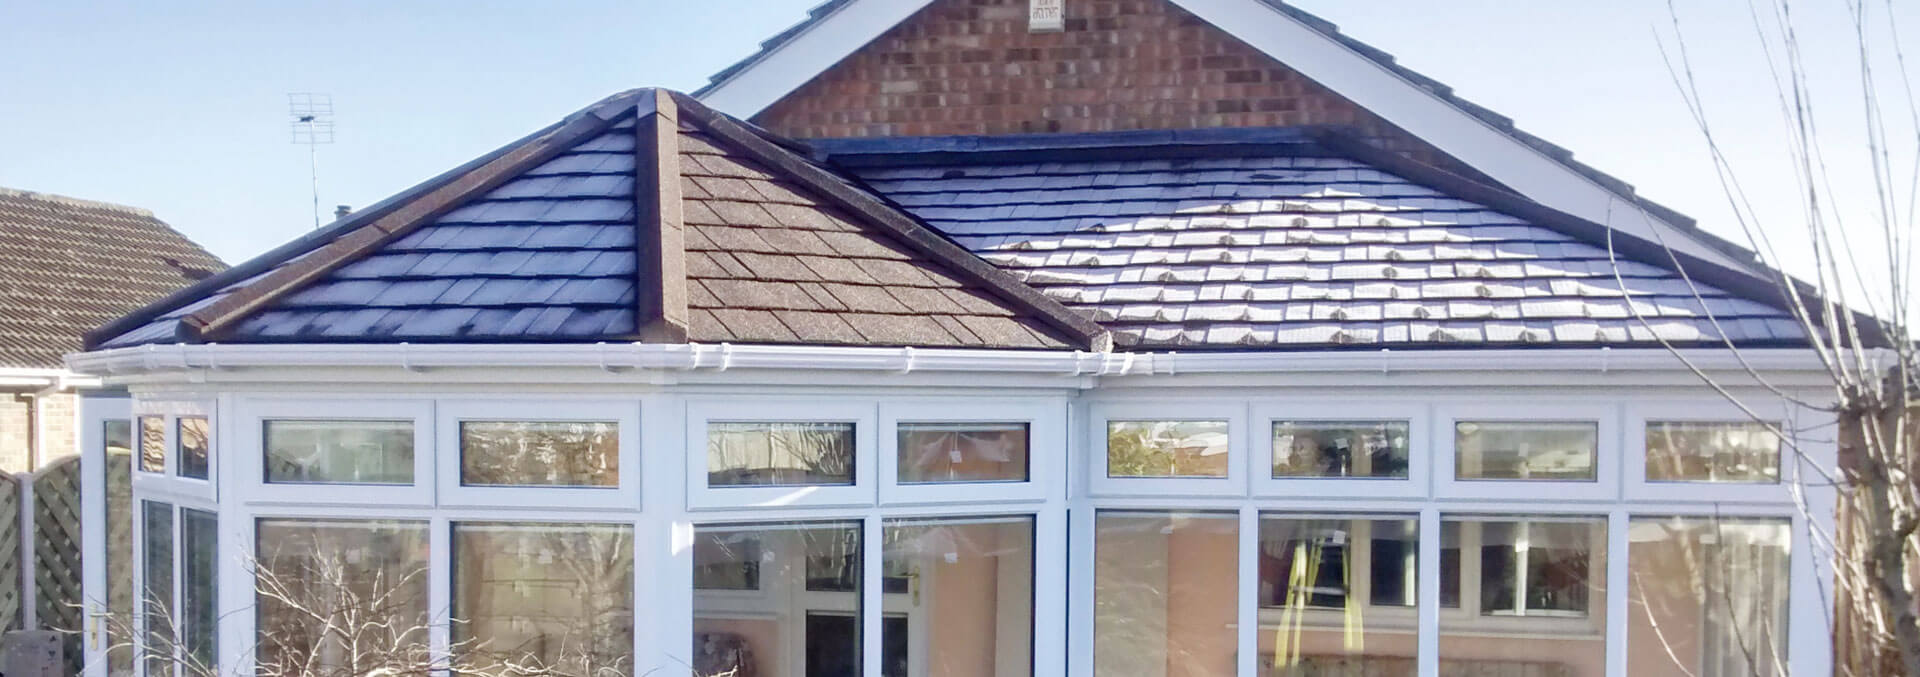 P shape conservatory with tiled roof system